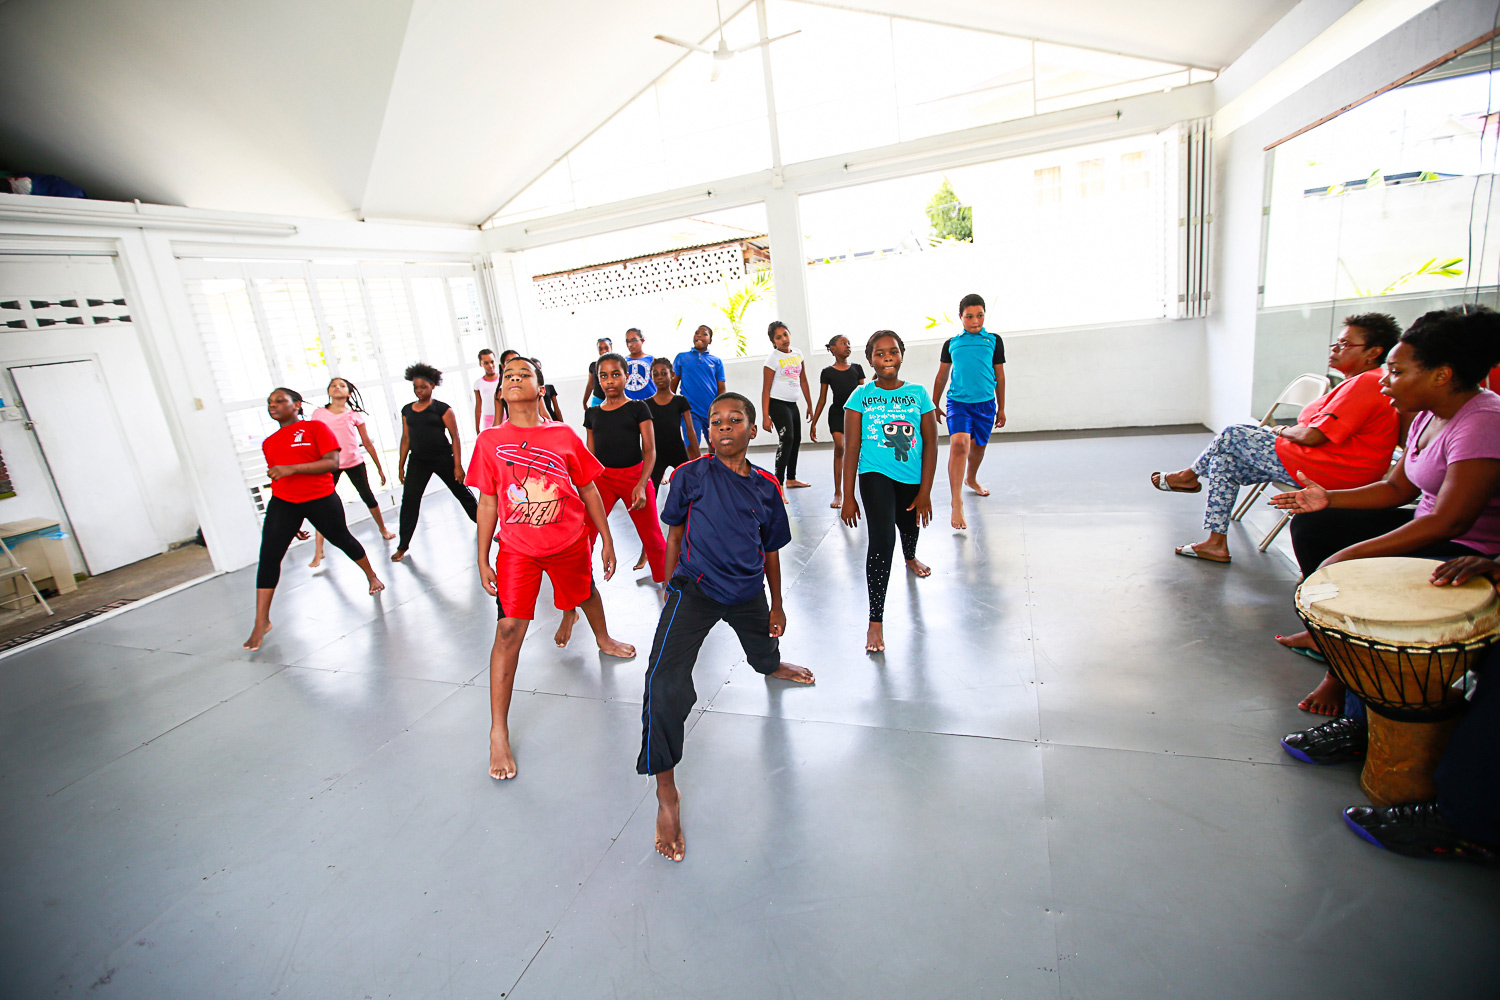 Artistic director, Noble Douglas, and dance and drama tutor, Tonya Evans, drill the young dancers in preparation for the stage. Photo courtesy Maria Nunes for Lilliput Children's Theatre.